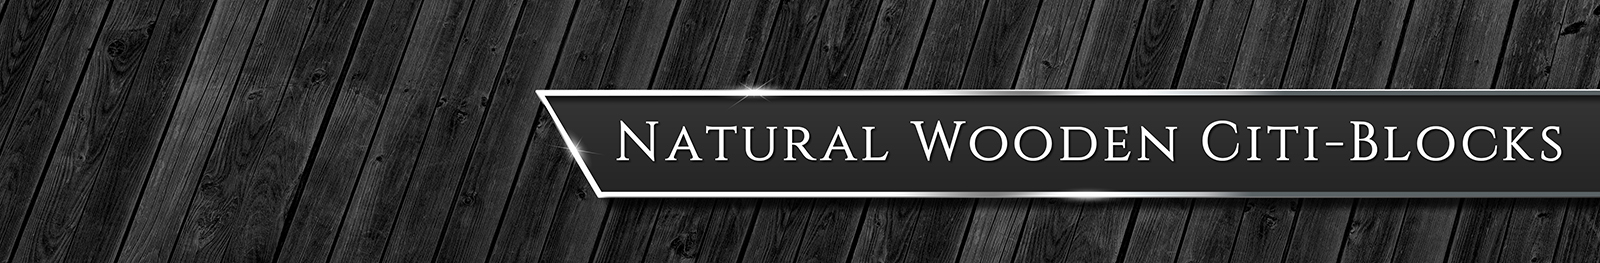 Natural Wooden Citiblocks Page Banner